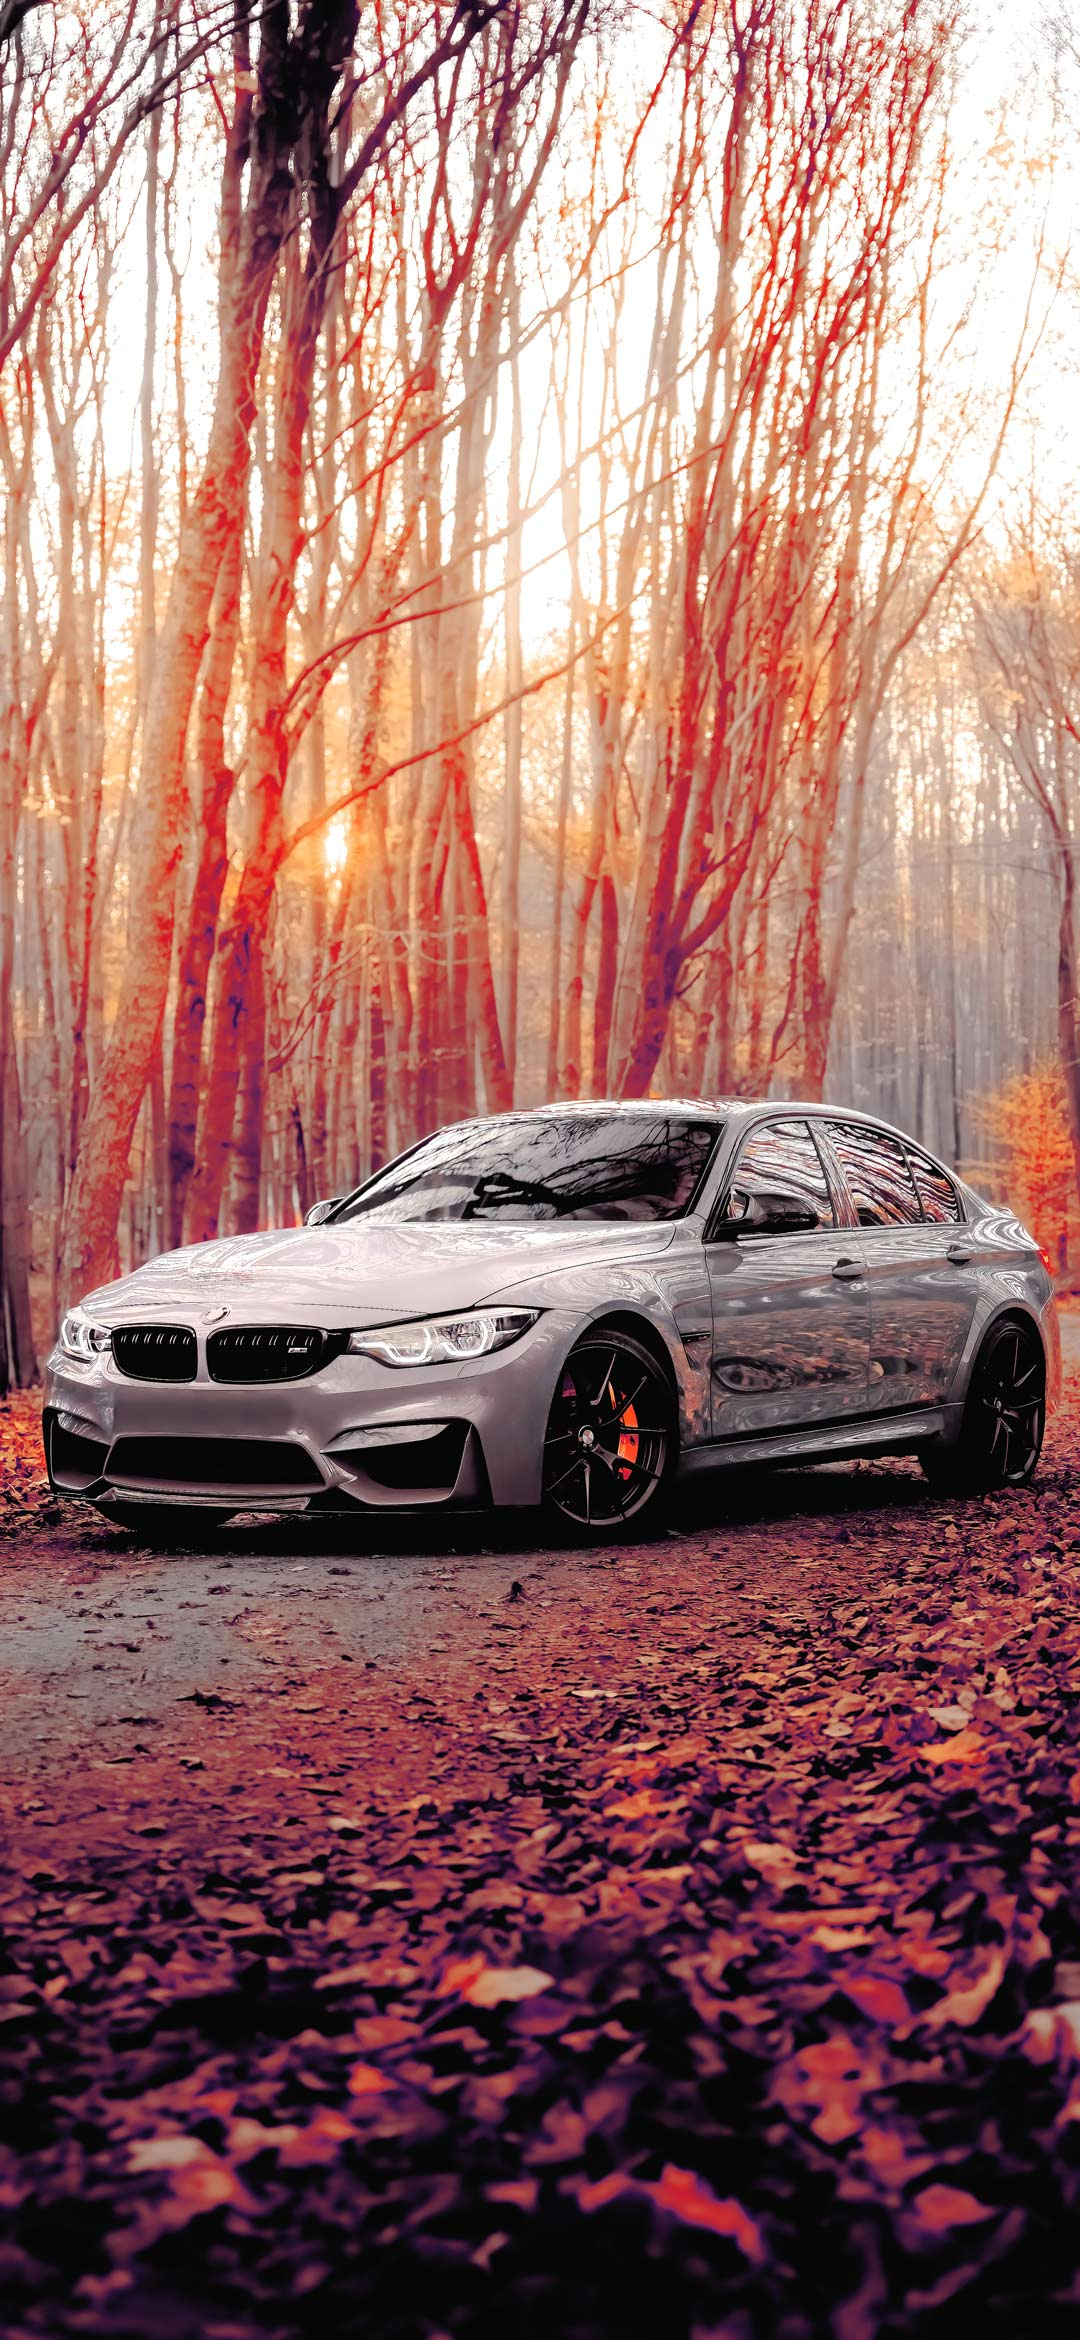 silver bmw m3 coupe parked on forest